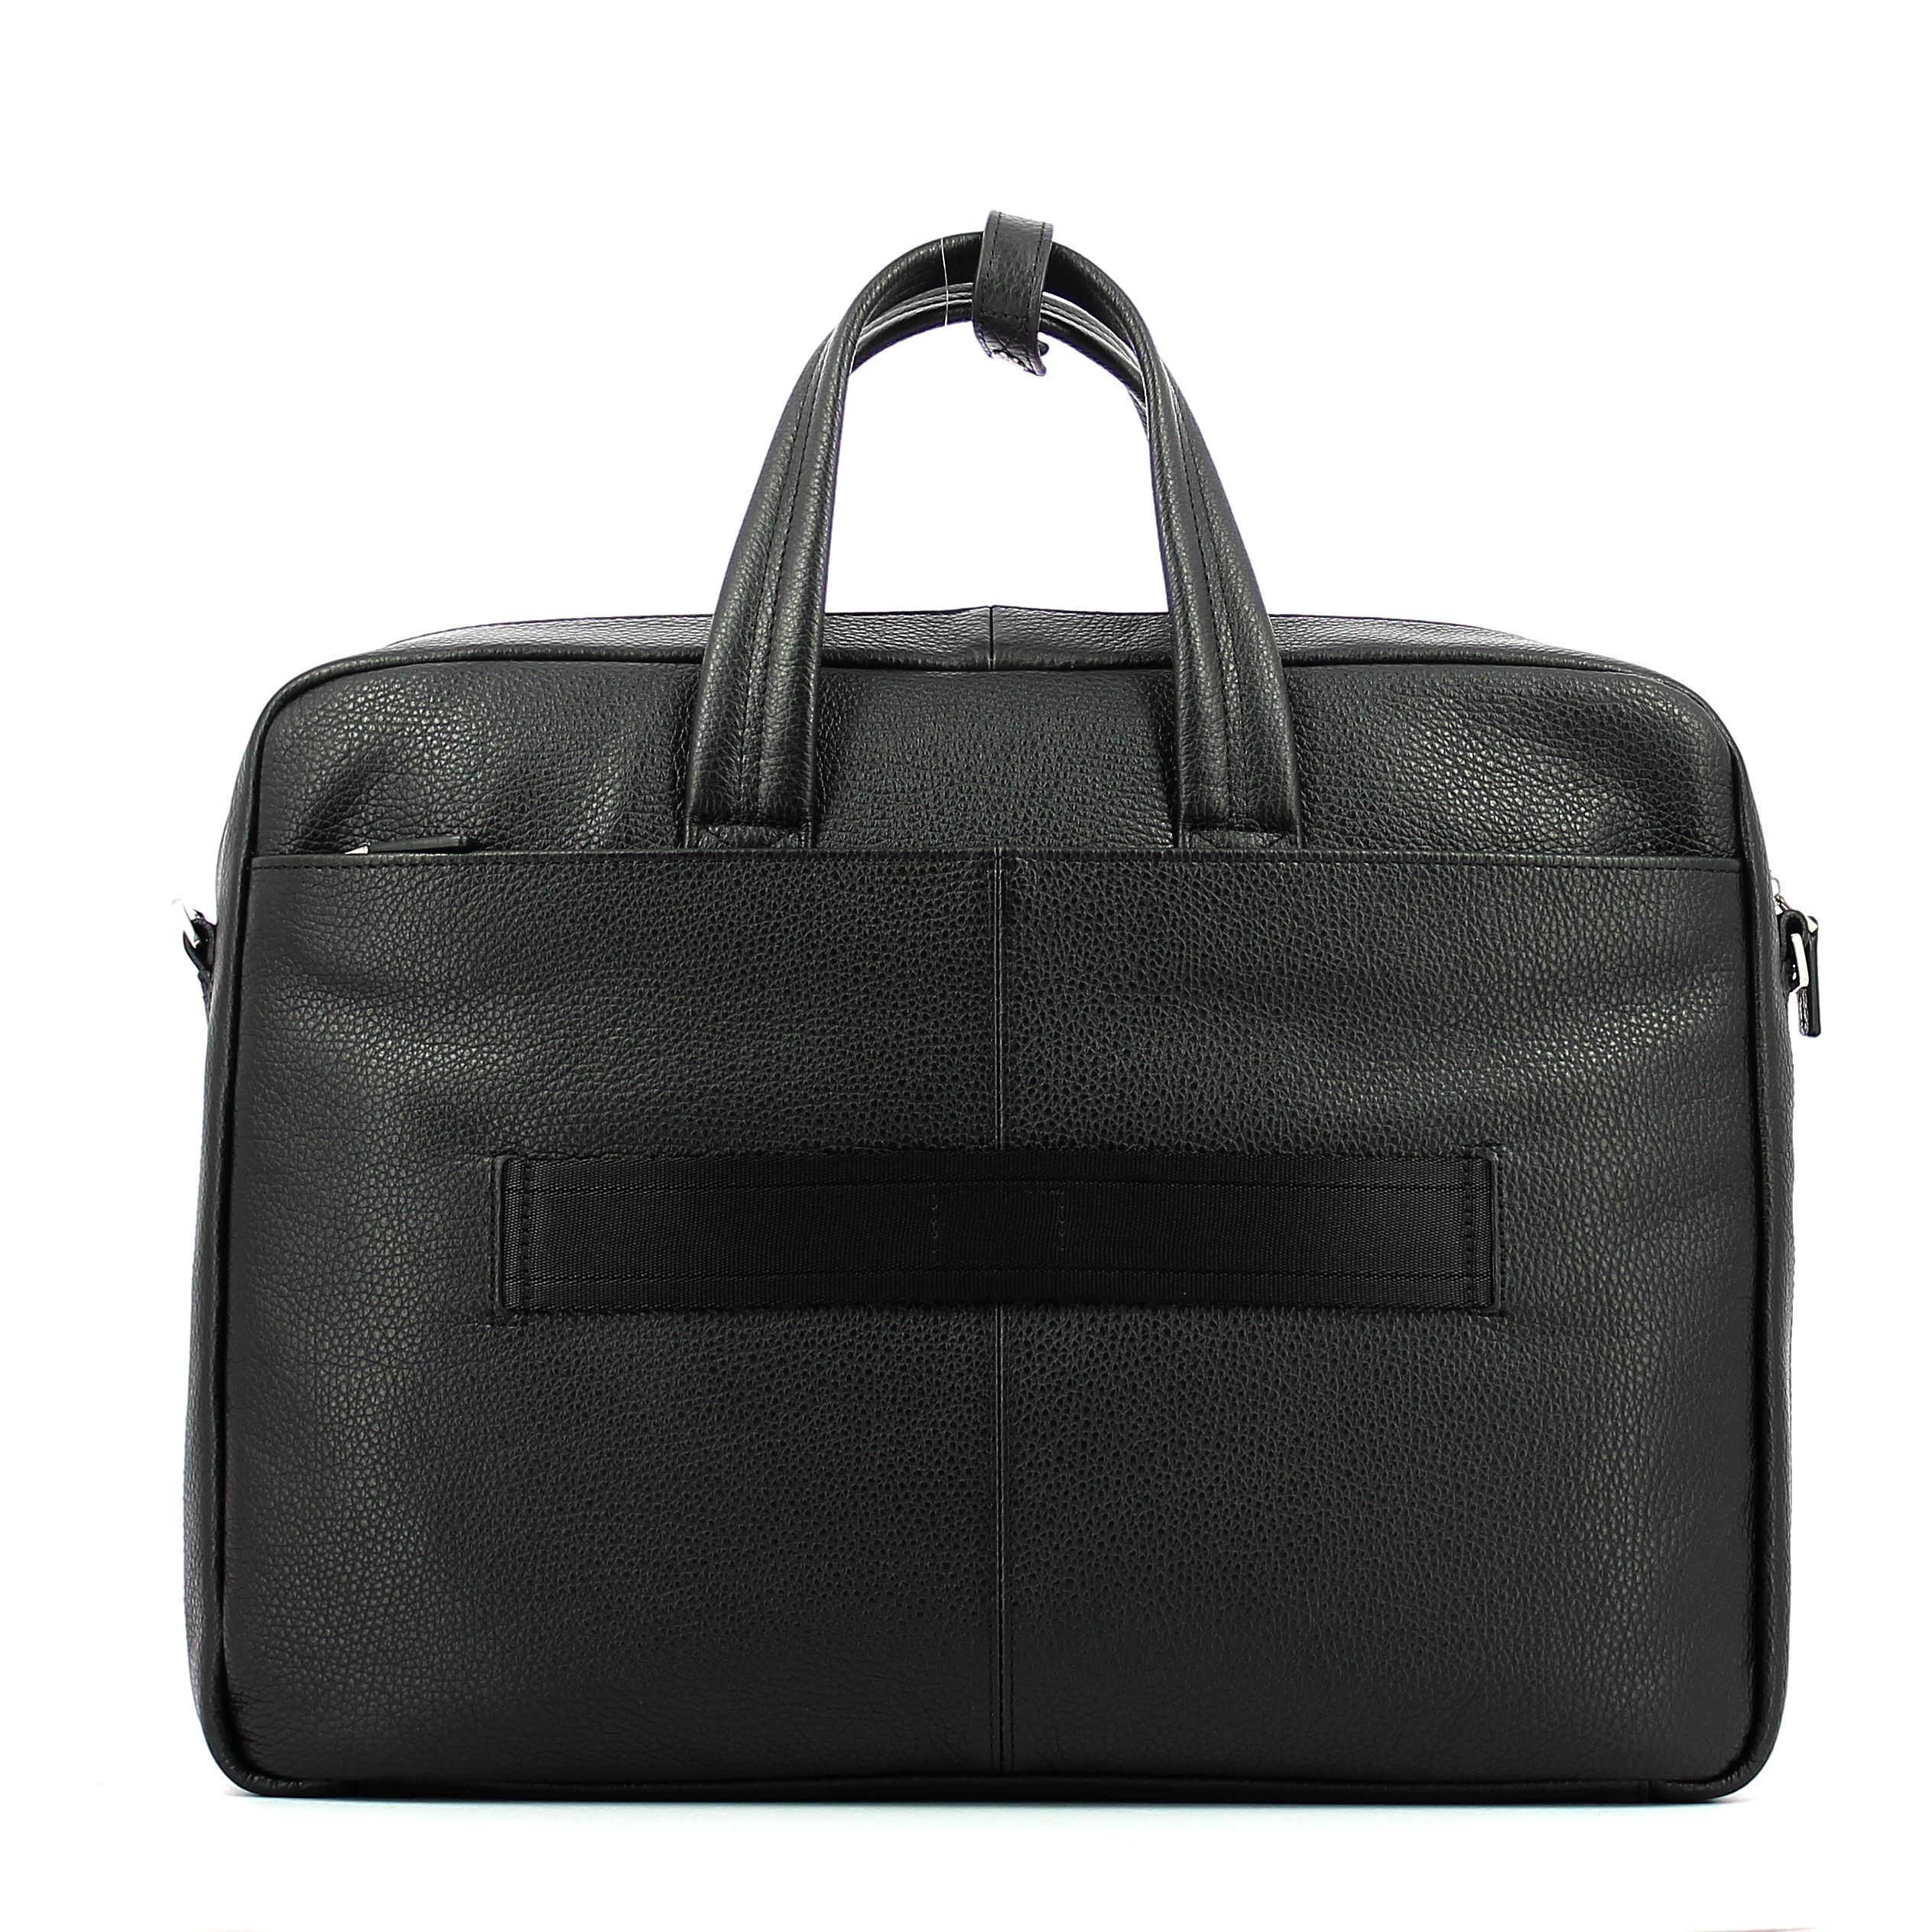 Double handle laptop briefcase Vibe 15.6 Piquadro NERO